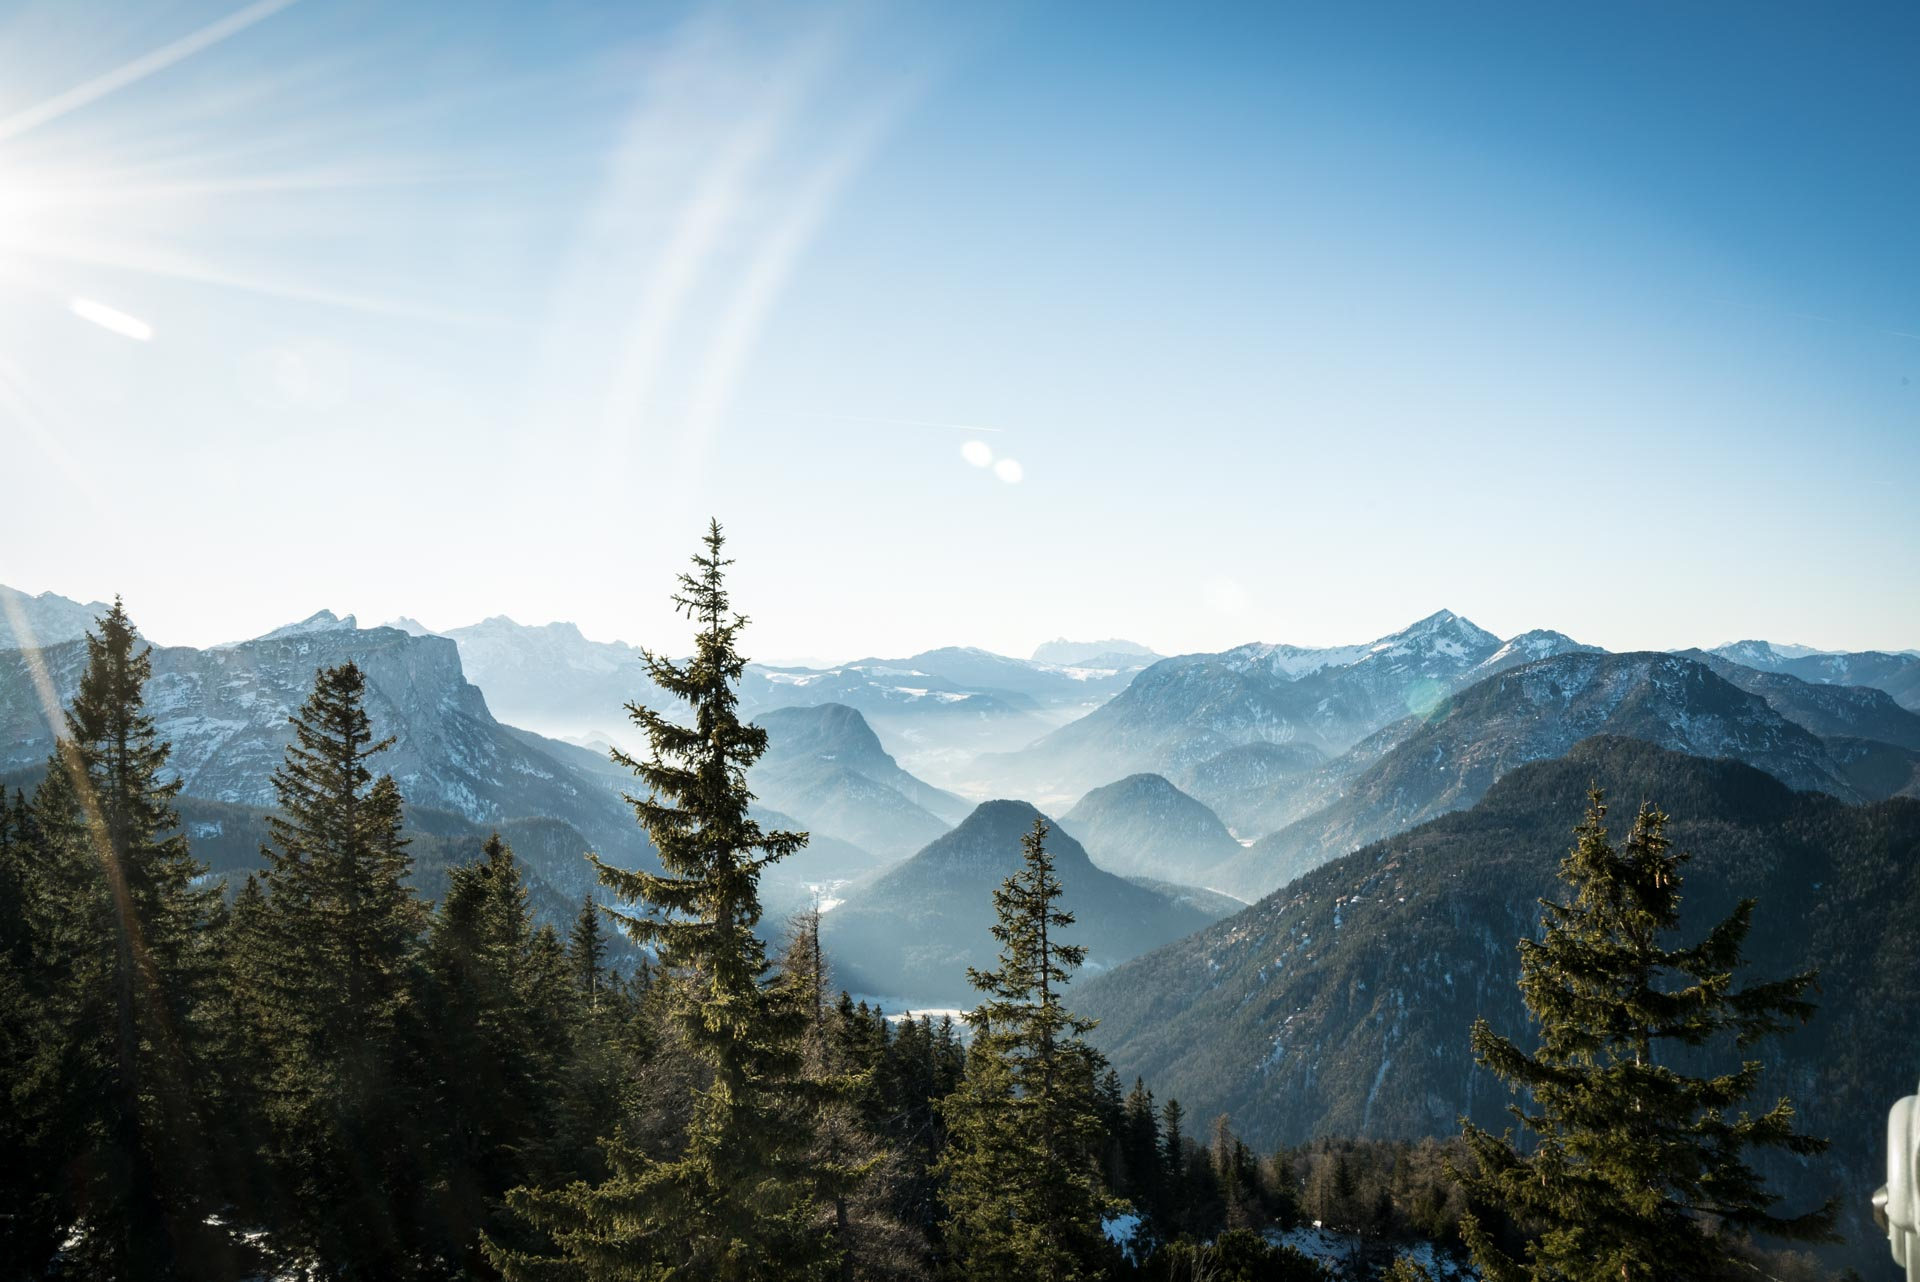 hiking trails in berchtesgadenerland gets you views like this